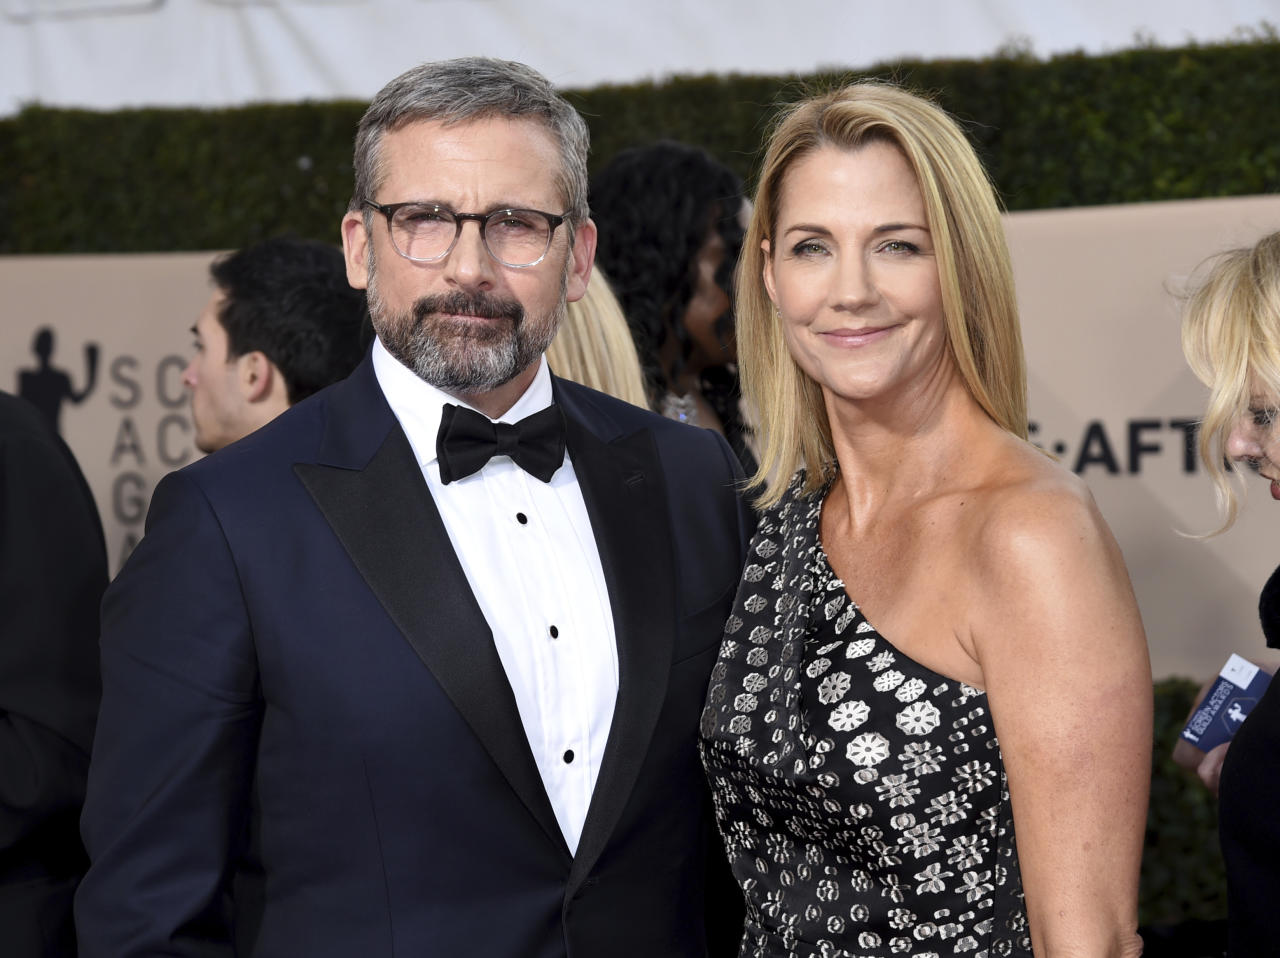 Steve Carell, left, and Nancy Carrell arrive at the 24th annual Screen Actors Guild Awards at the Shrine Auditorium & Expo Hall on Sunday, Jan. 21, 2018, in Los Angeles. (Photo by Richard Shotwell/Invision/AP)